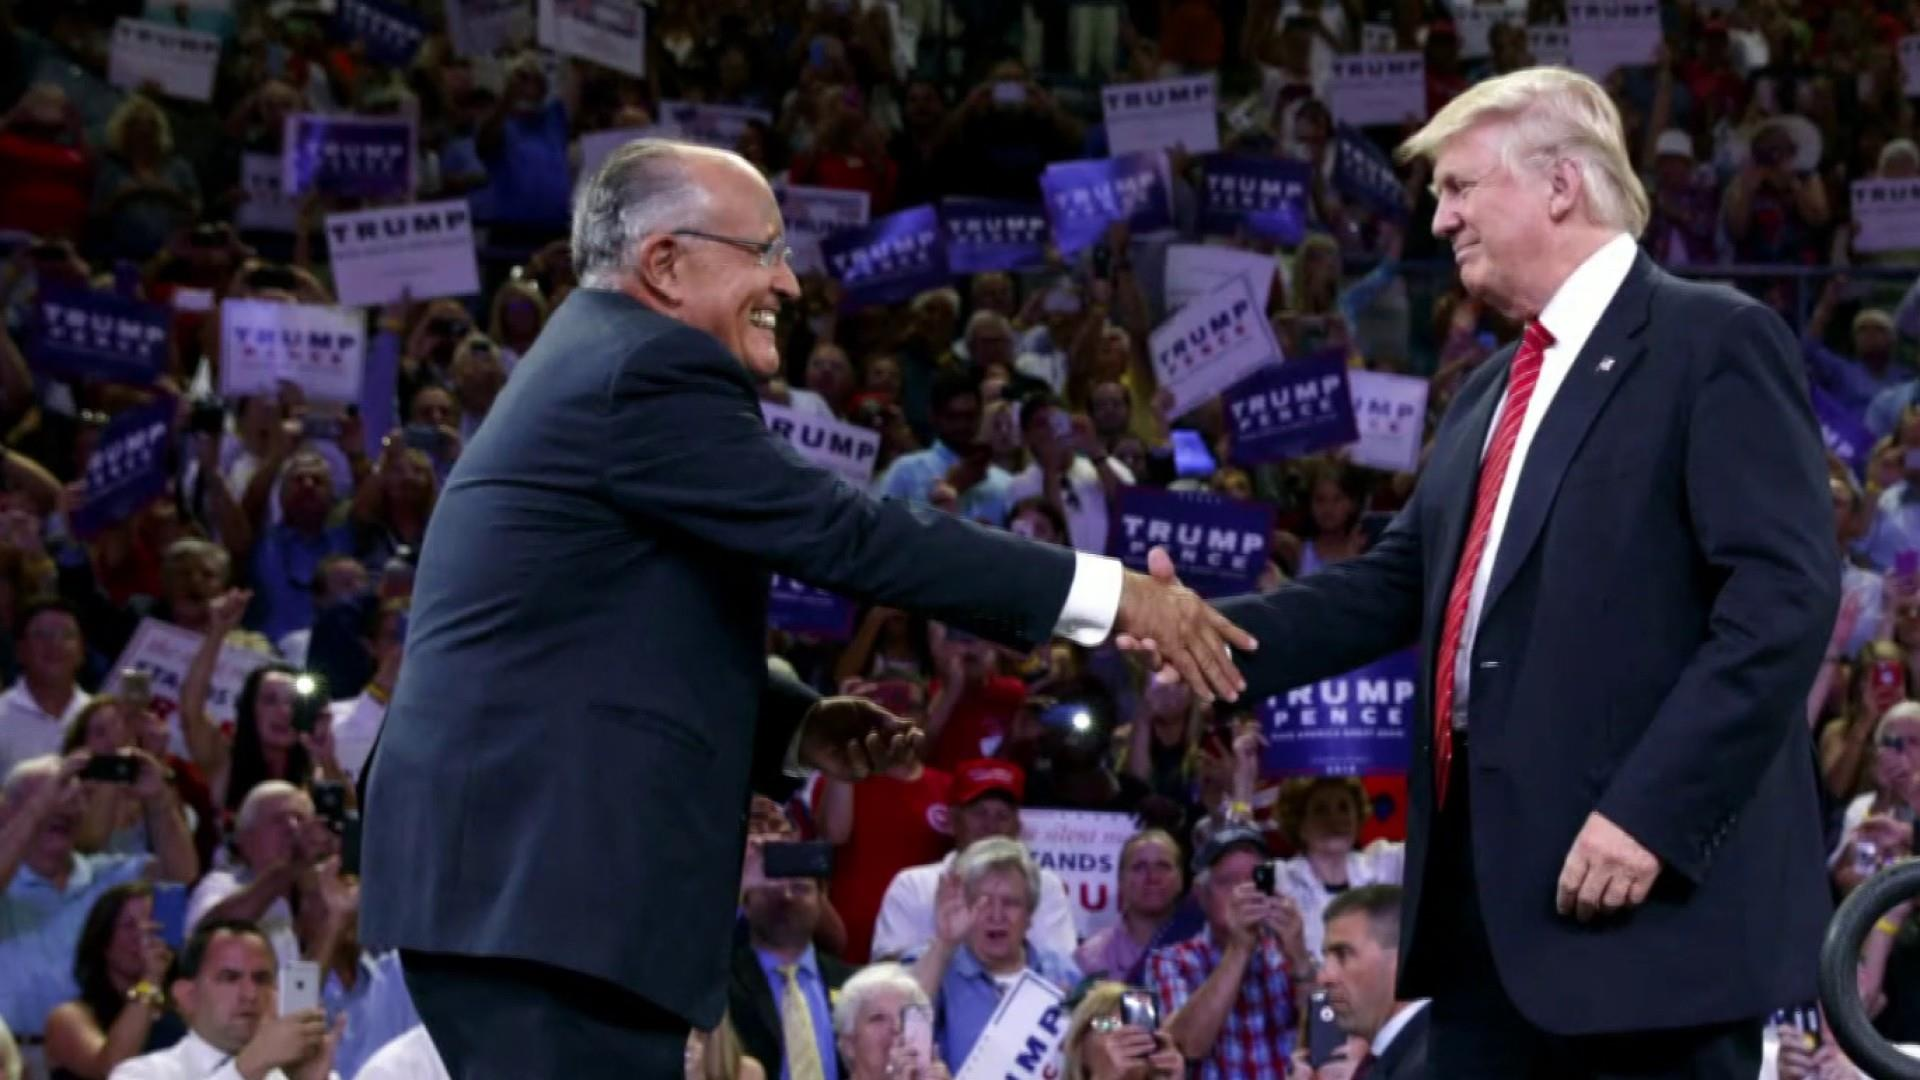 Rudy Giuliani leading Trump to brink of impeachment: NYT